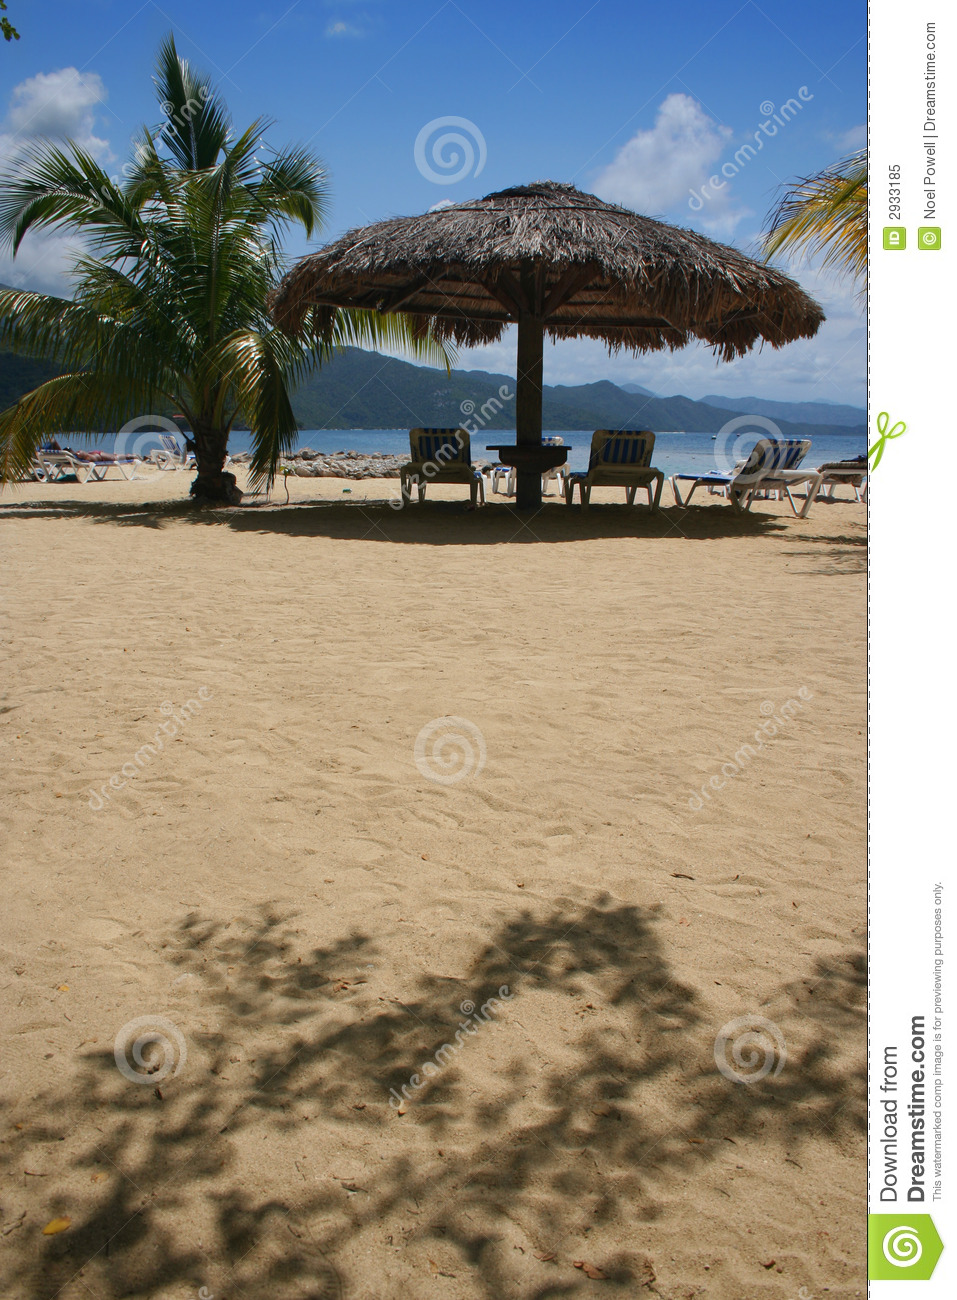 Thatched-Roof Beach Umbrella